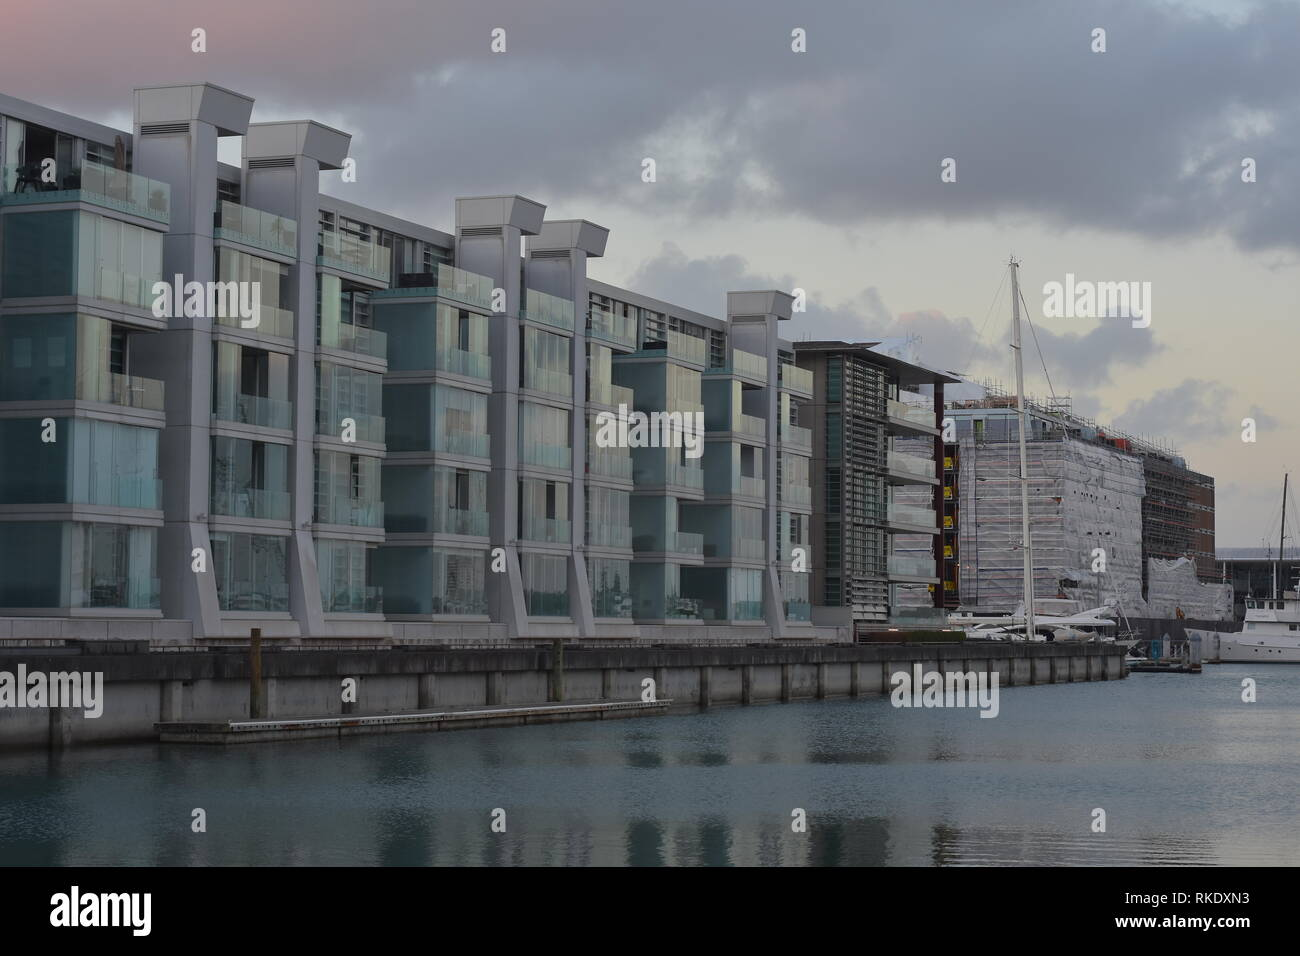 Modern apartments with large glass panels on exterior walls on waterfront of Auckland Viaduct Harbour in gray cloudy evening. - Stock Image